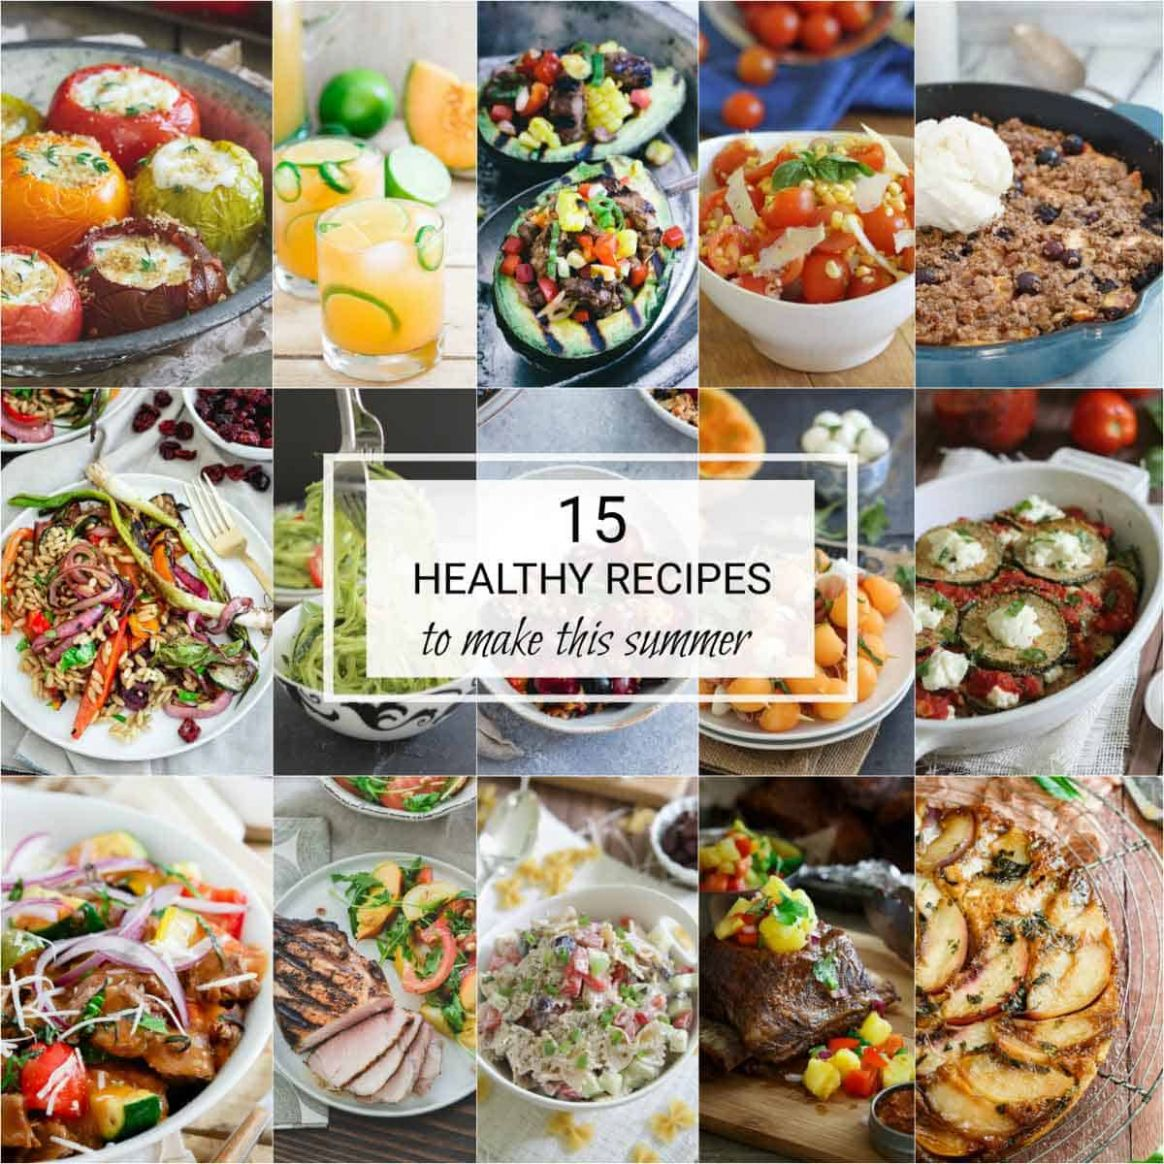 9 Healthy Summer Recipes - Easy Recipes To Make This Summer - Recipes Summer Buffet Lunch